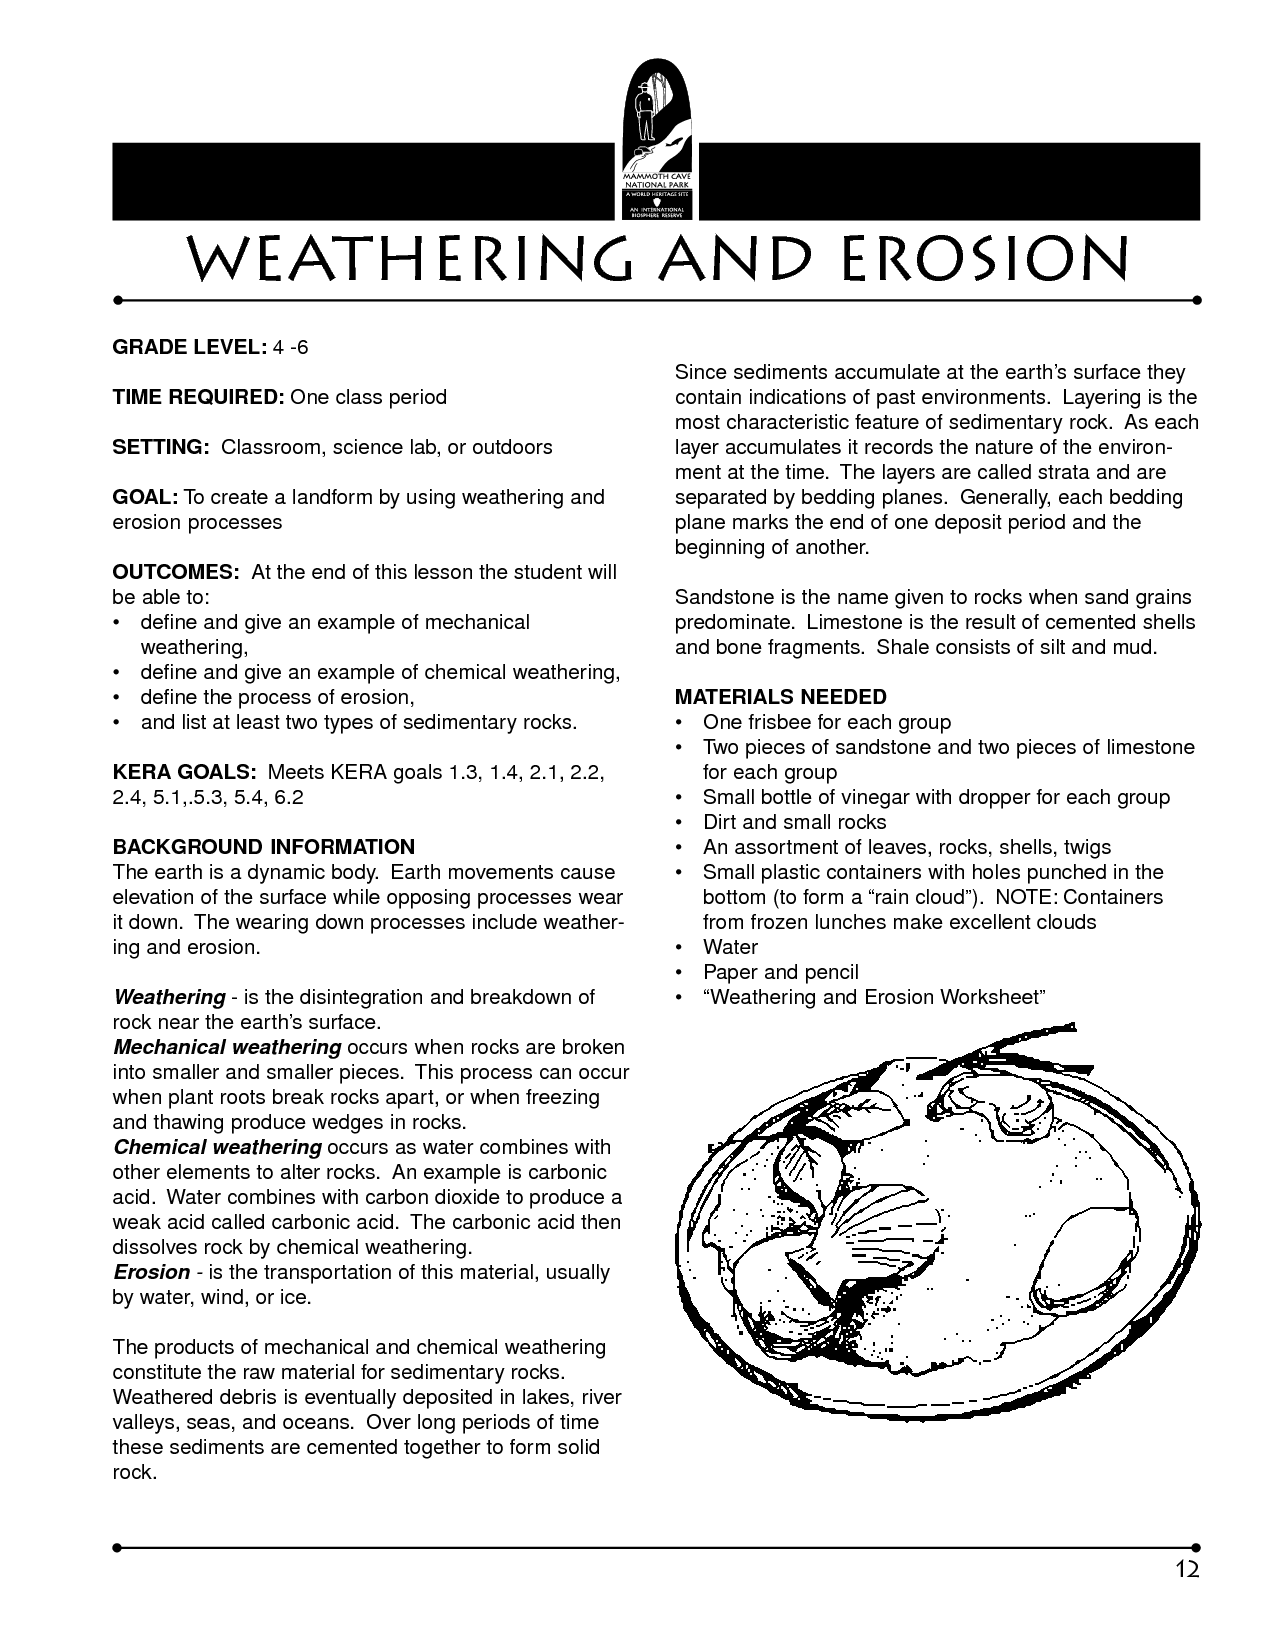 15 Best Images Of Weather Worksheets 4th Grade